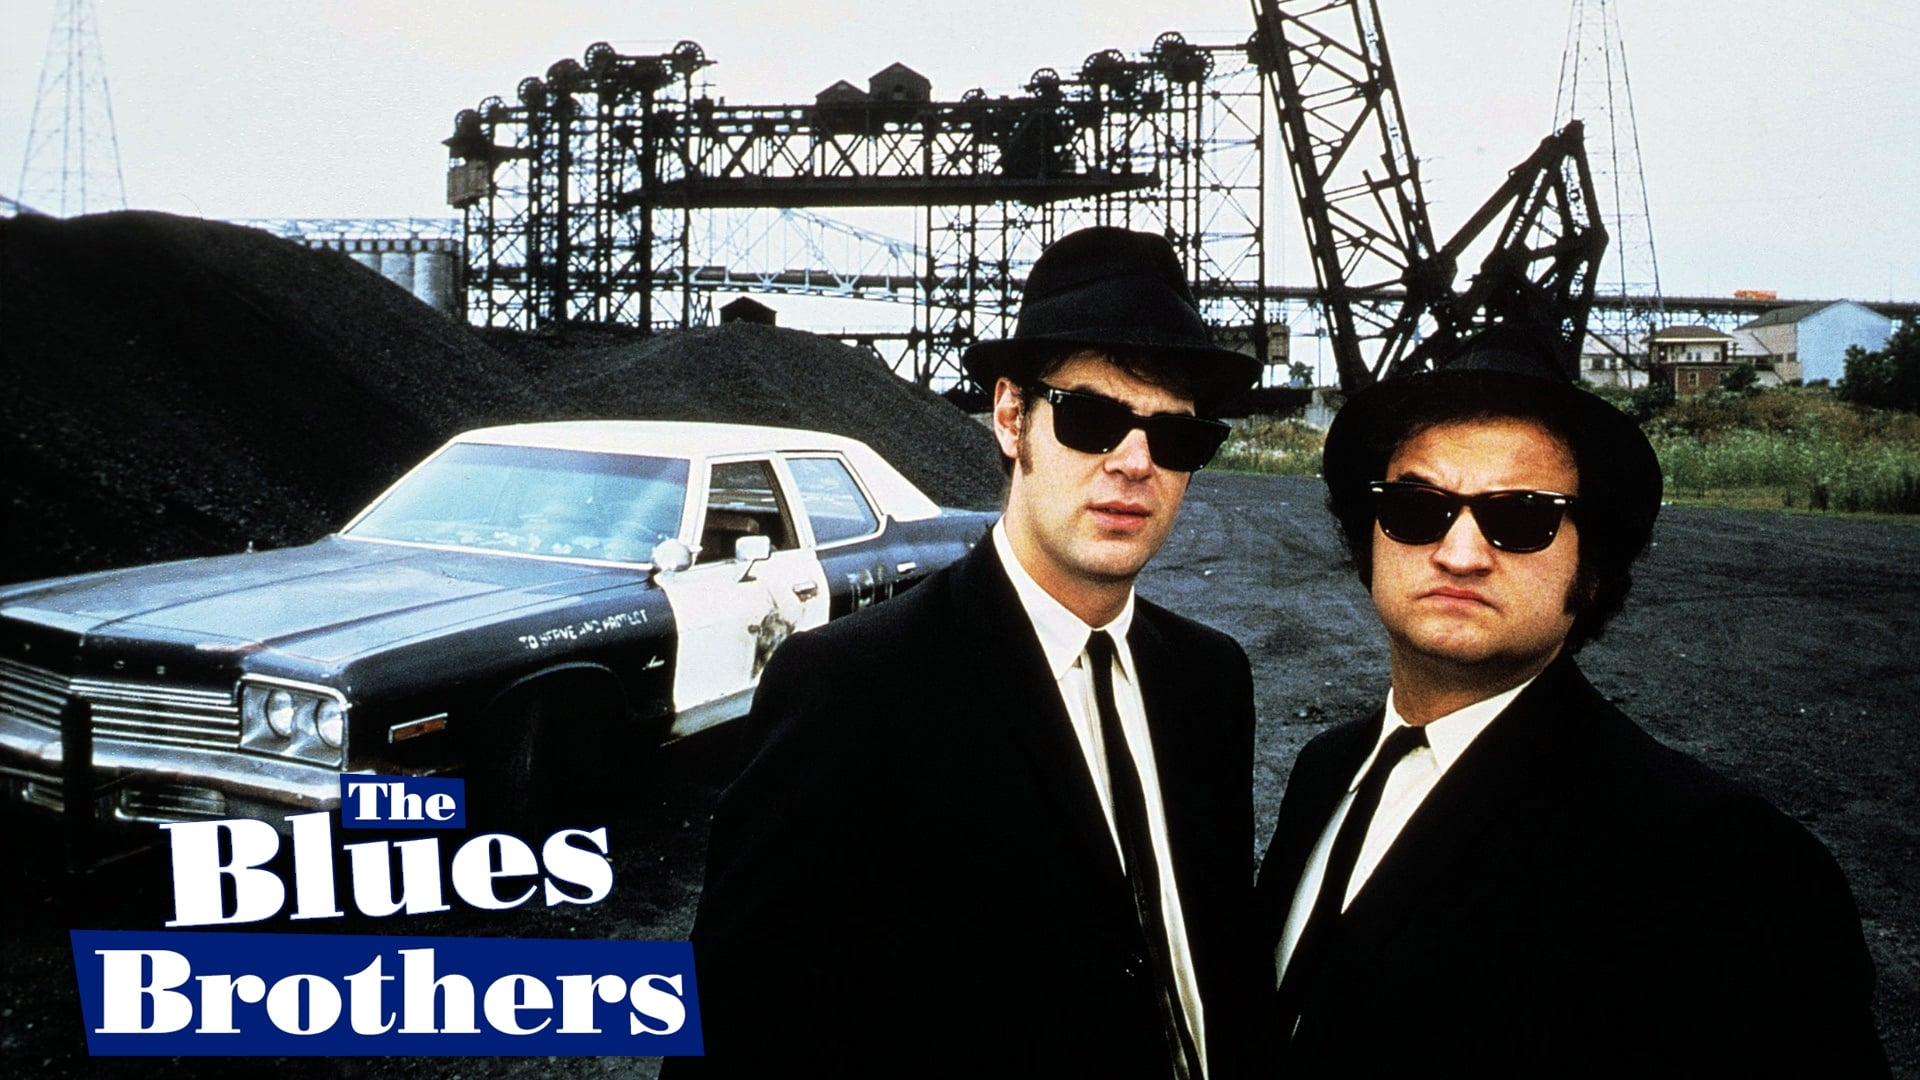 Watch The Blues Brothers (1980) Full Movie Online Free